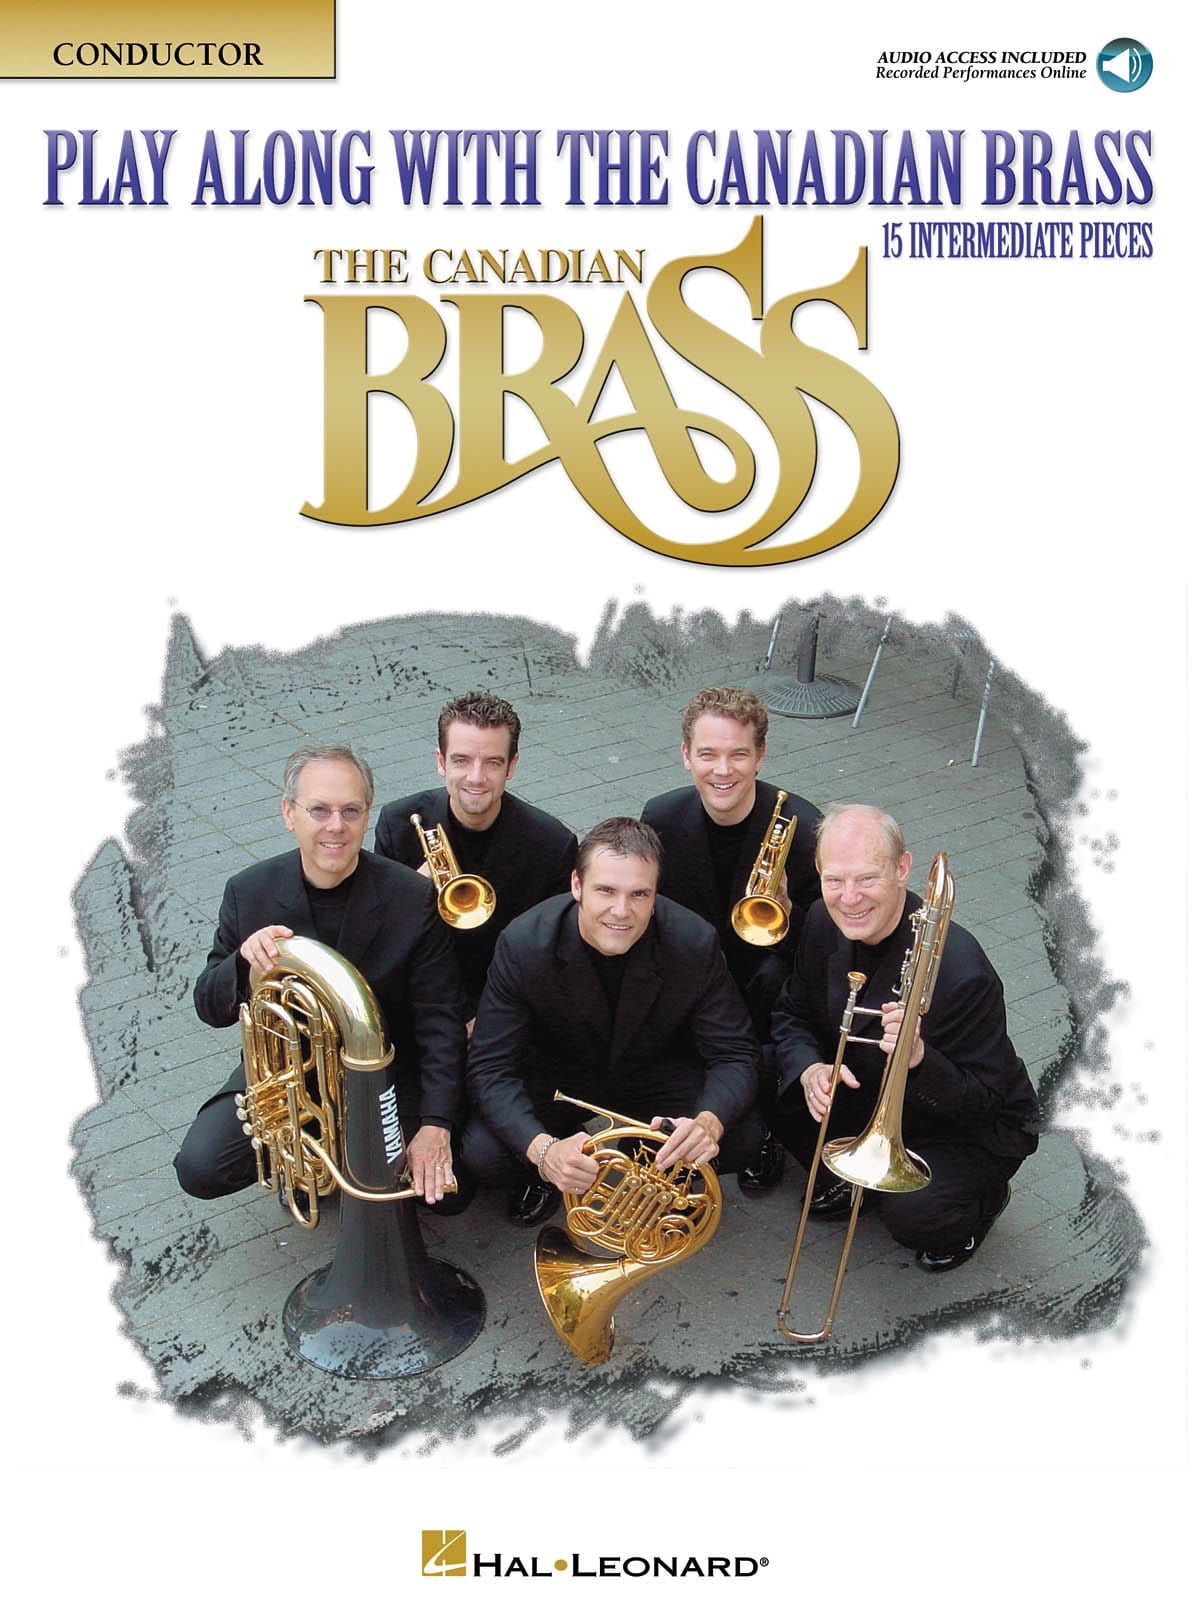 Play Along With the Canadian Brass - 15 intermediate Pieces avec audio - laflutedepan.com